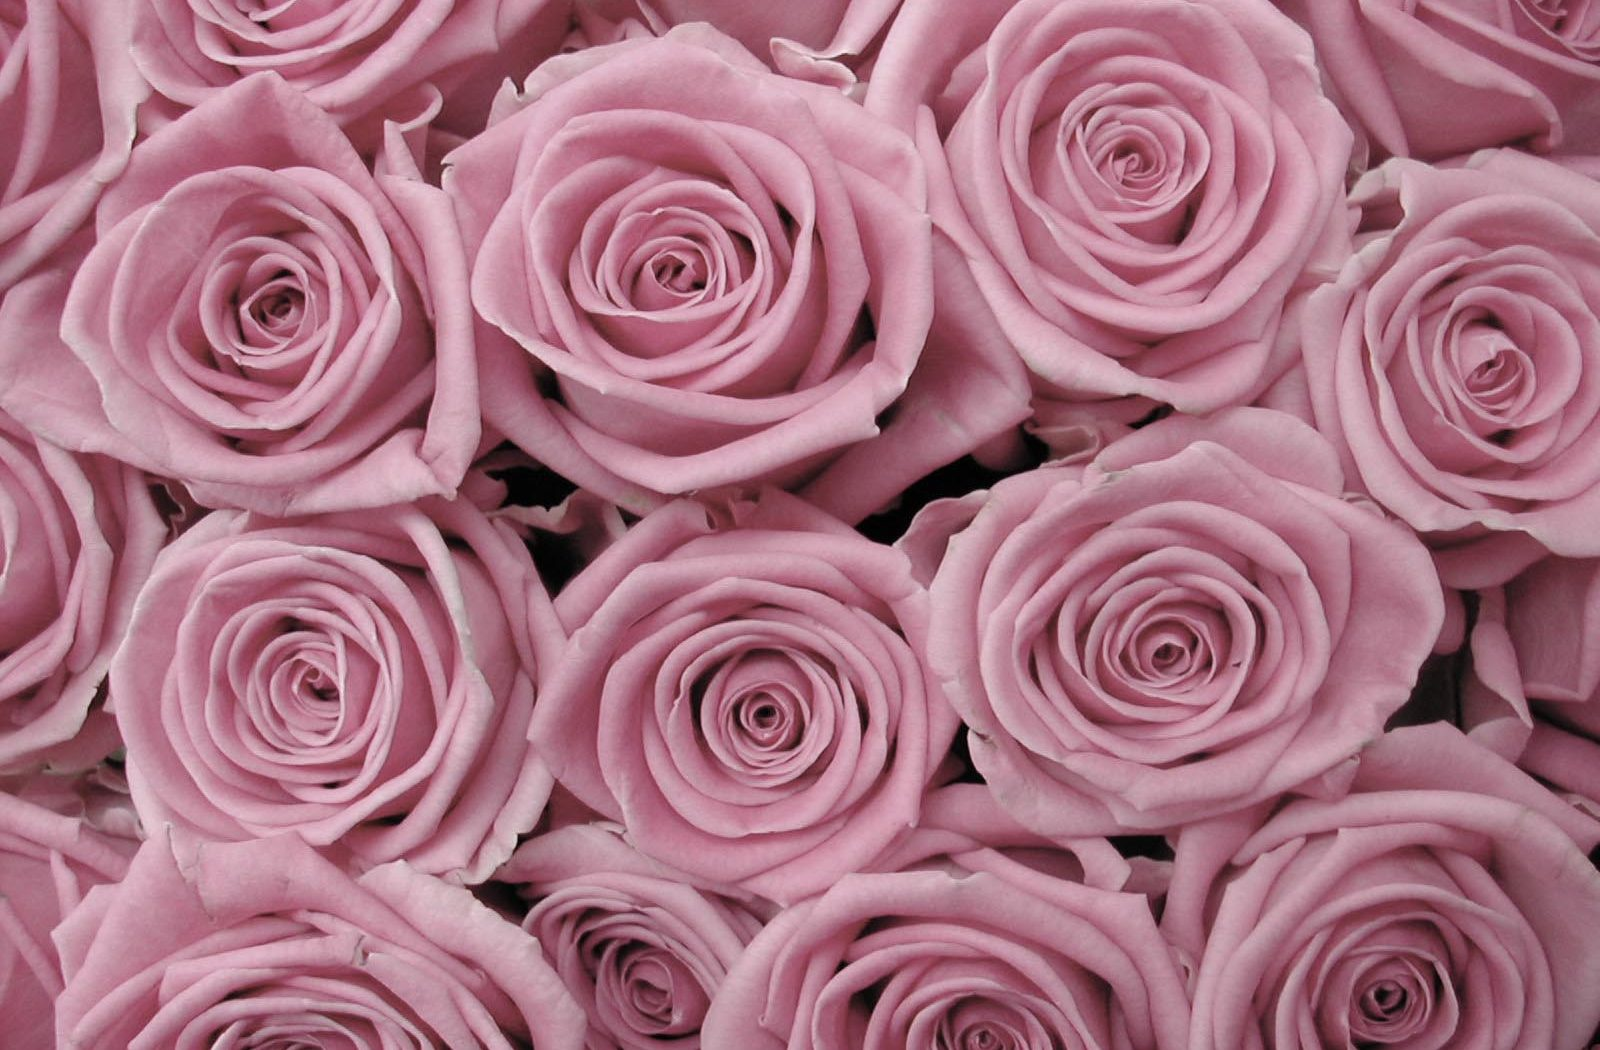 Rose Background tumblr | HD Wallpapers , HD Backgrounds ...